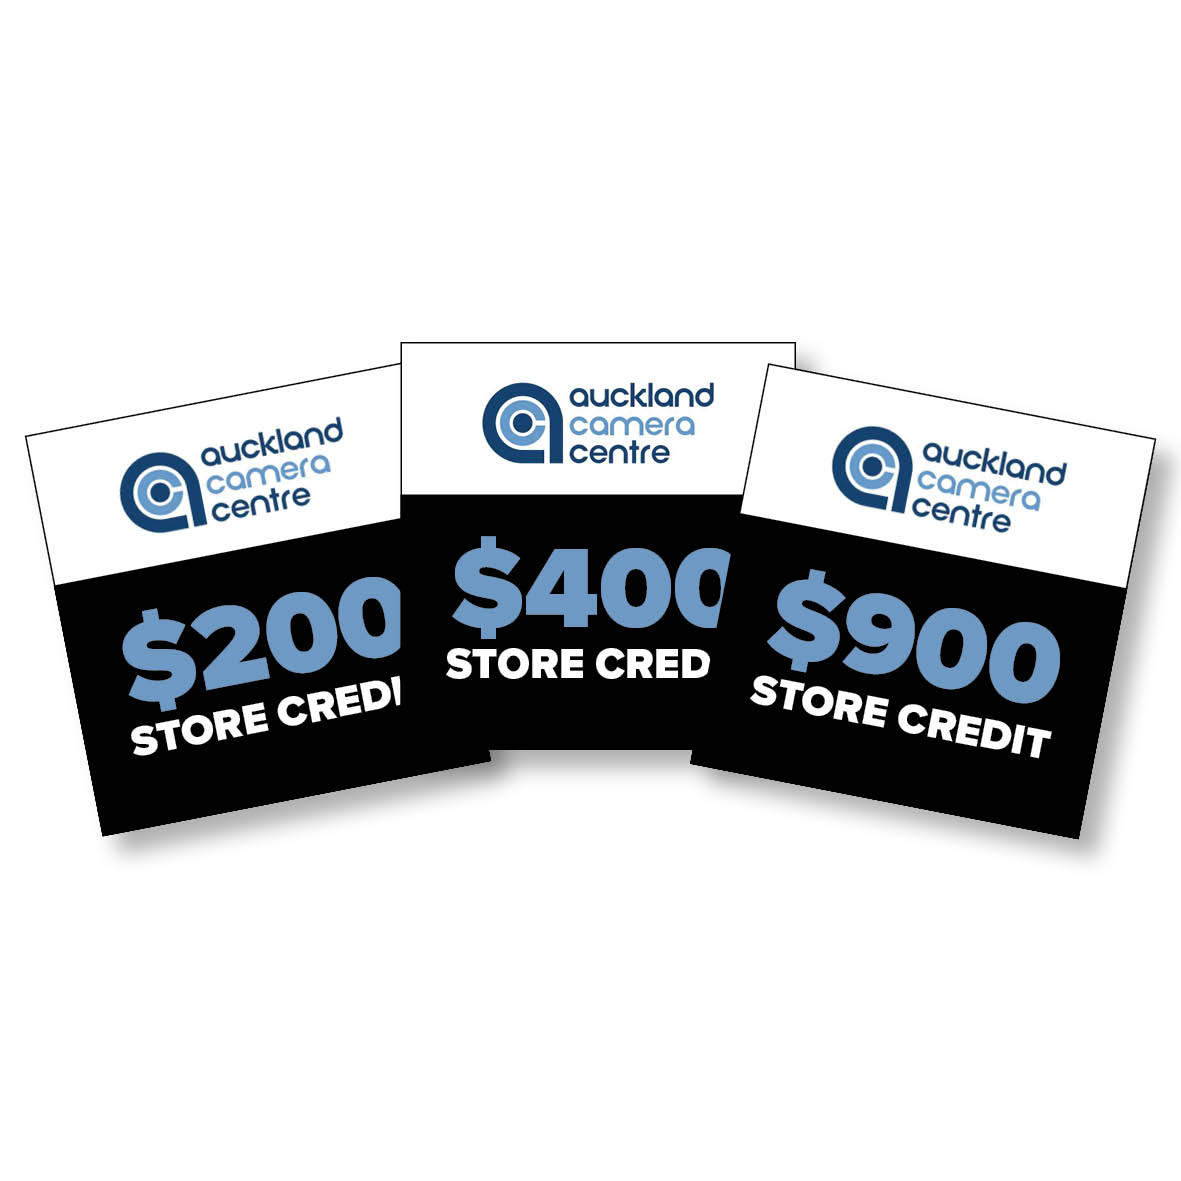 Student - Sponsored by Auckland Camera CentreFirst: $900 store creditSecond: $400 store creditThird: $200 store credit